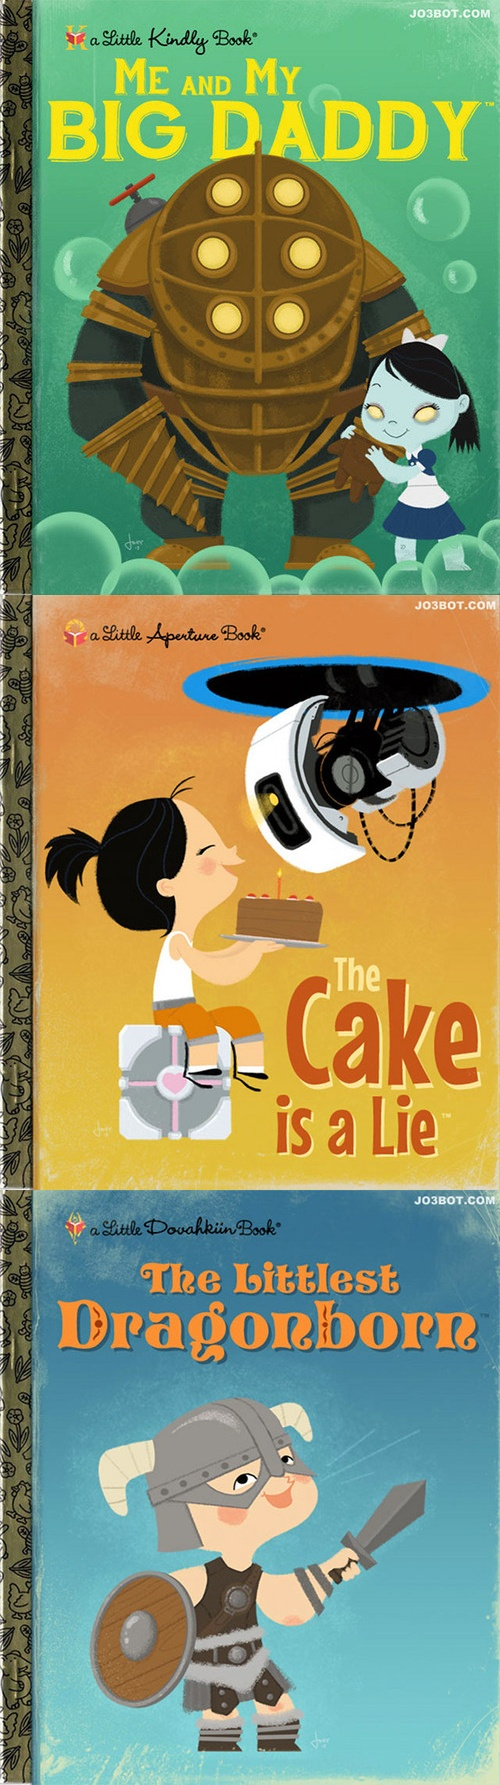 """Joebot's video game inspired mock covers for Little Golden Books: """"Me and My Big Daddy"""" for BioShock, """"The Cake is a Lie"""" for Portal, and """"The Littlest Dragonborn"""" for Skyrim {www.etsy.com/shop/joebot?ref=seller_info}."""